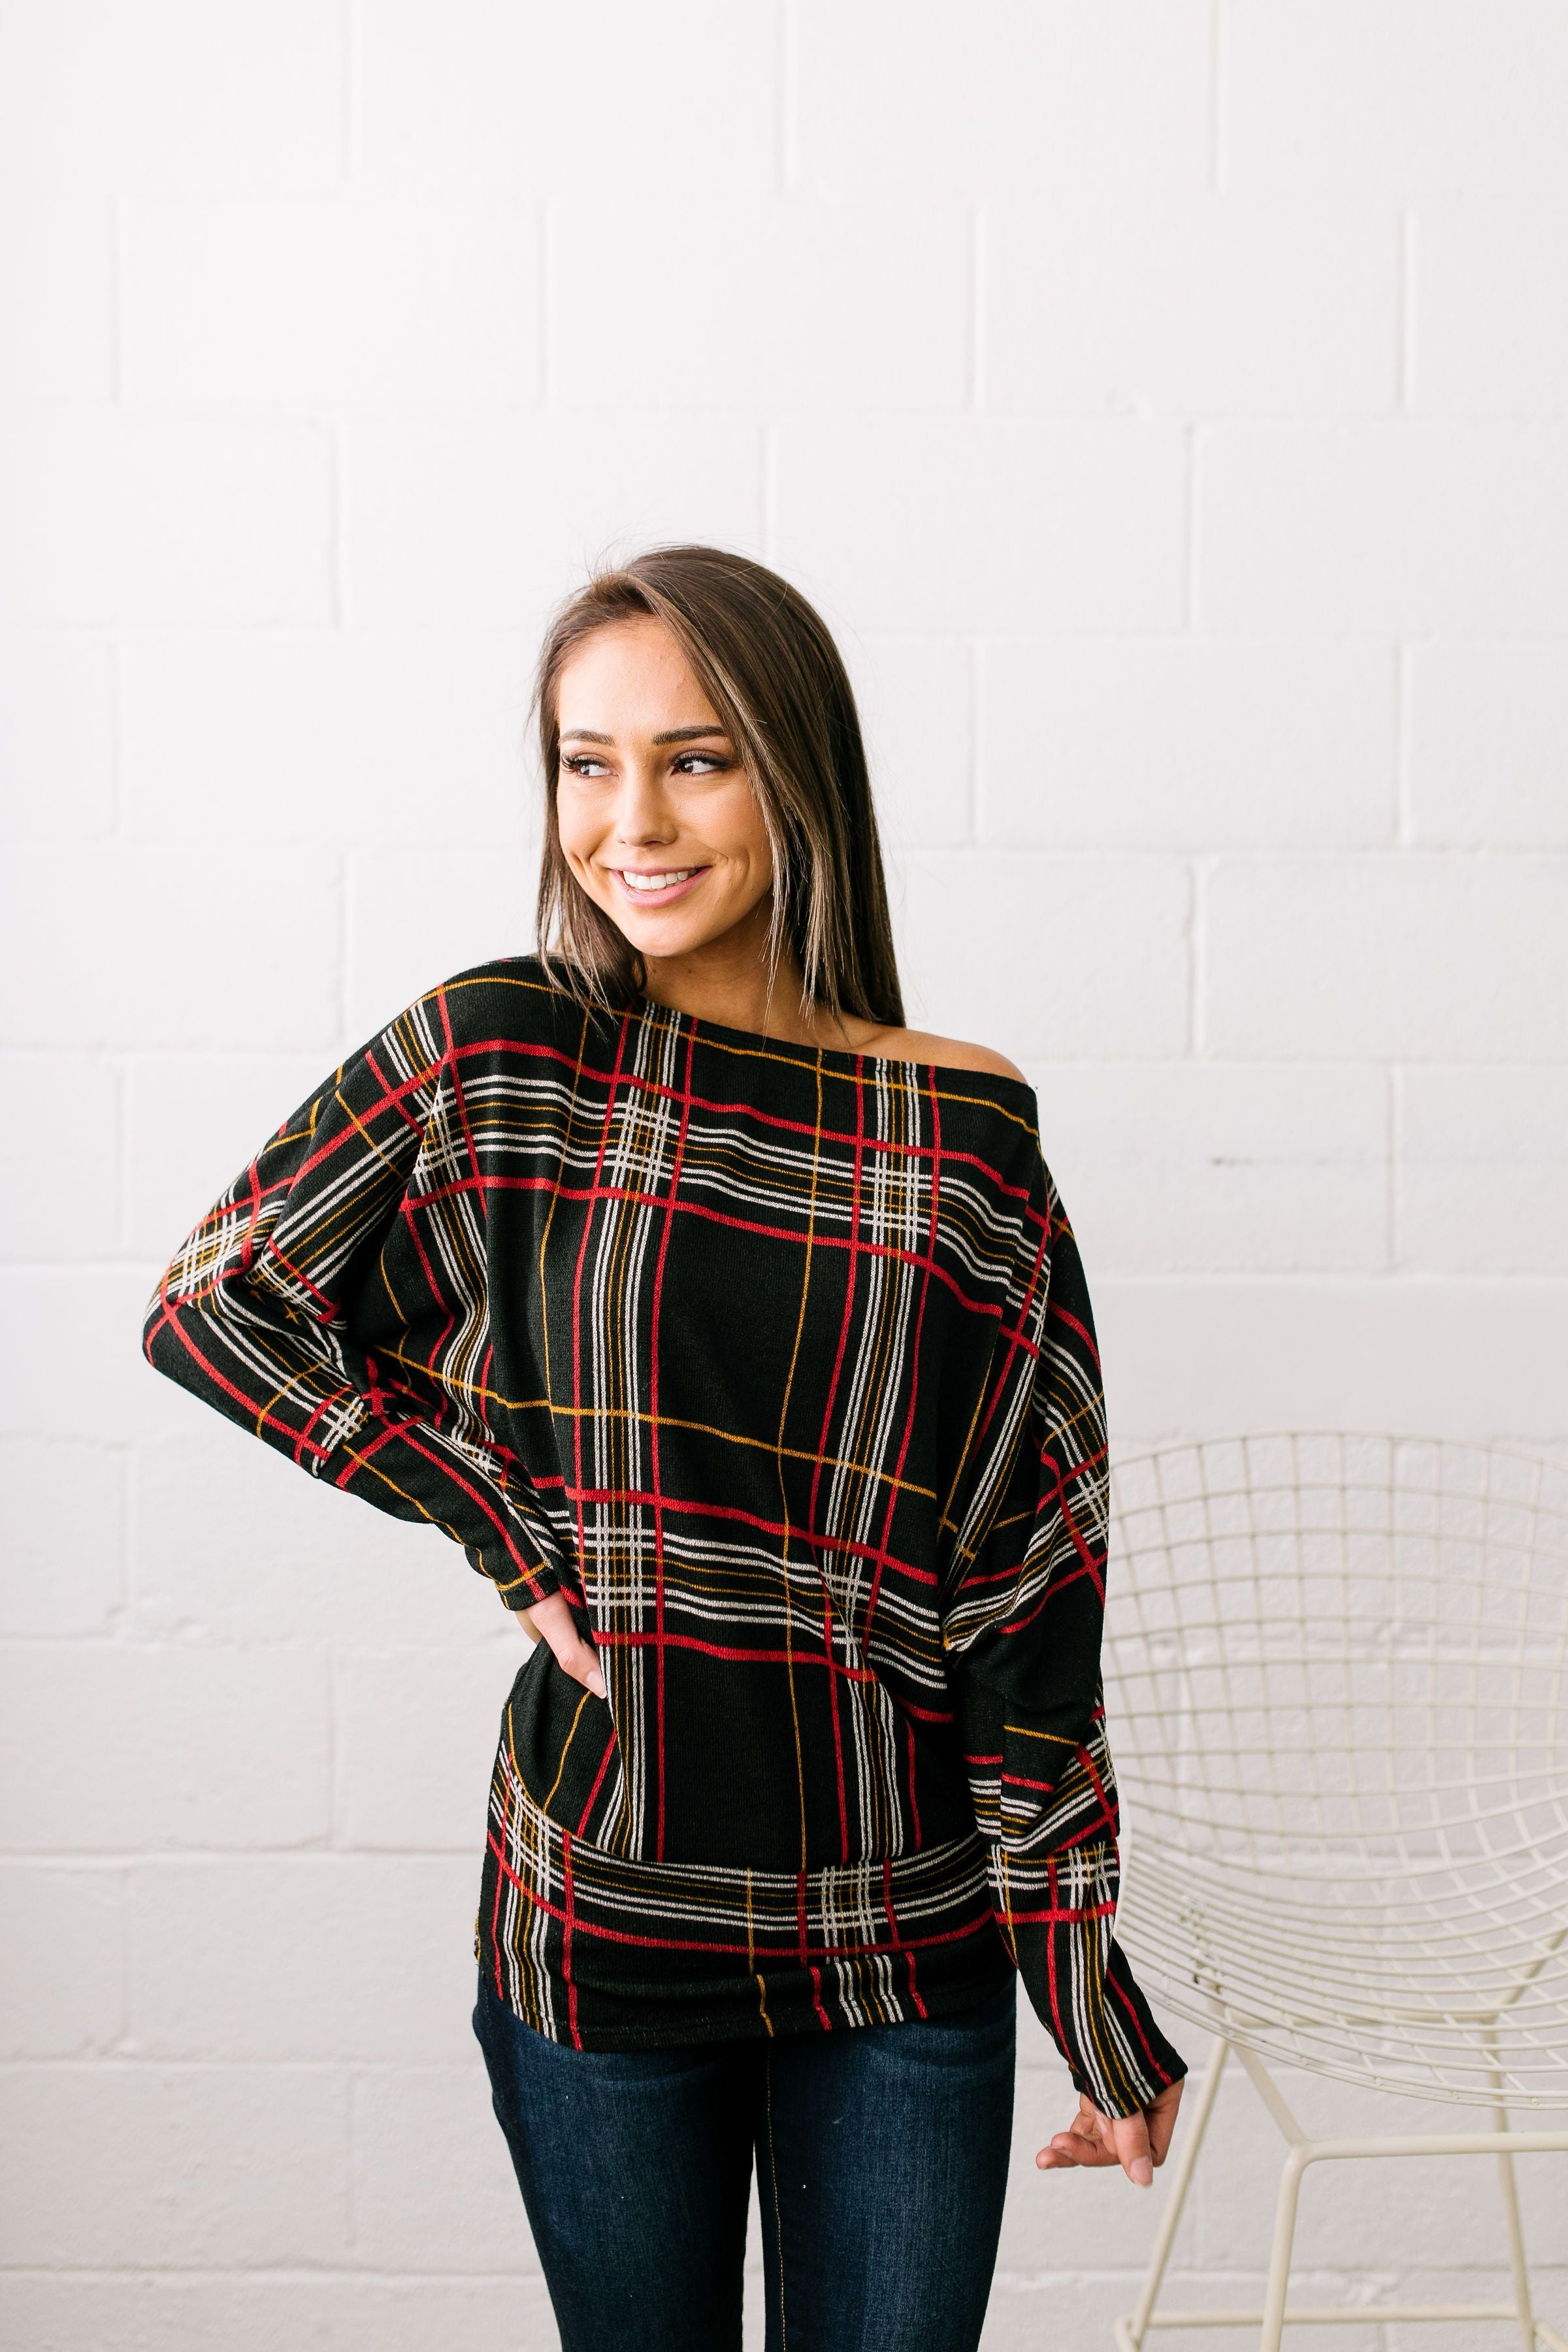 Highland Holiday Plaid Dolman Sleeve Sweater - ALL SALES FINAL